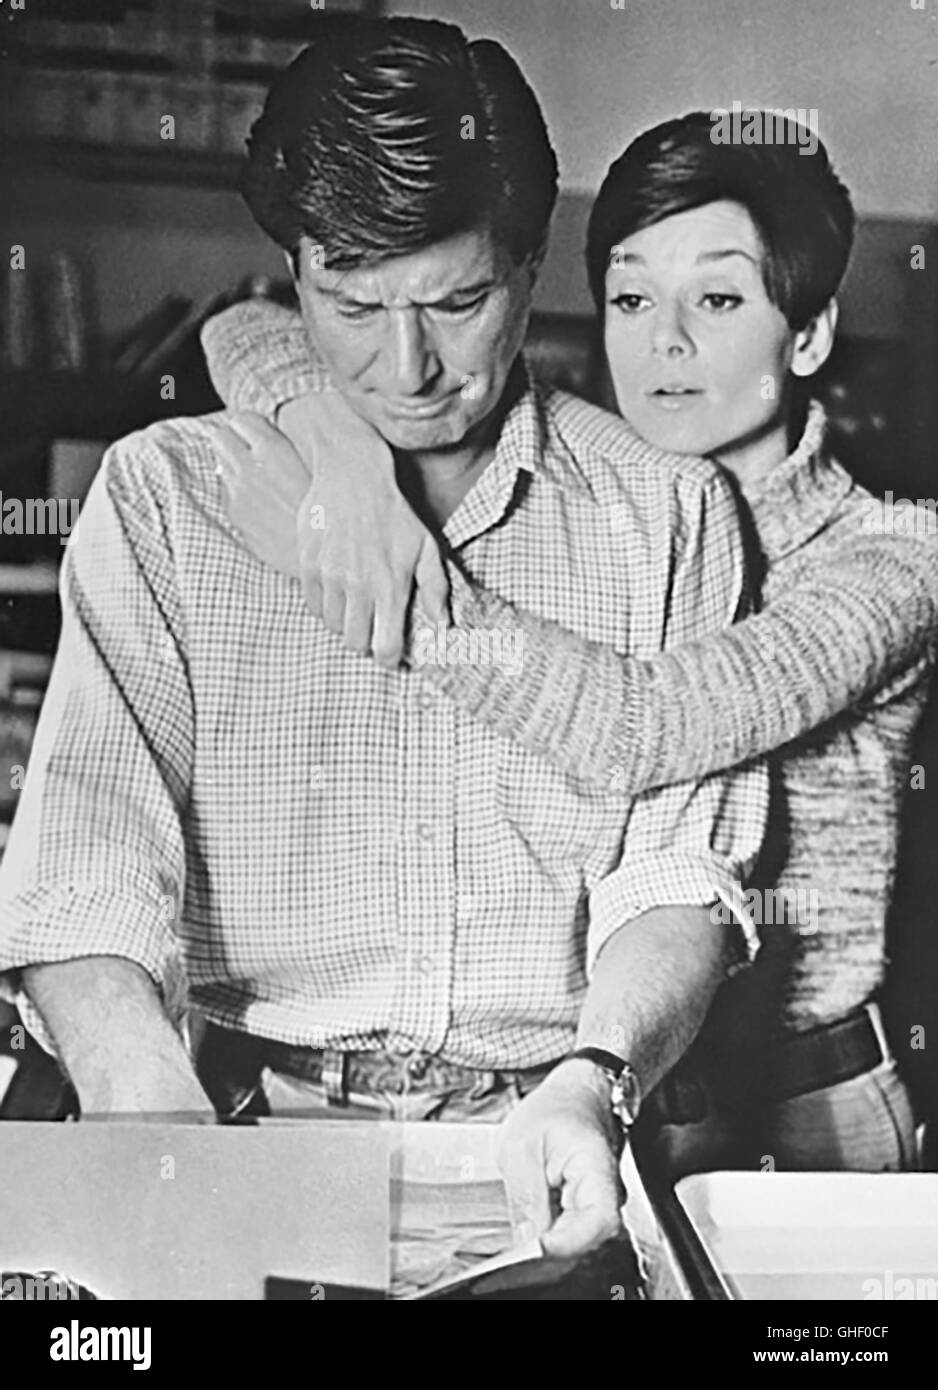 WAIT UNTIL DARK USA 1967 Terence Young EFREM ZIMBALIST JR. as Sam Hendrix, AUDREY HEPBURN as blind Susy Hendrix - Stock Image